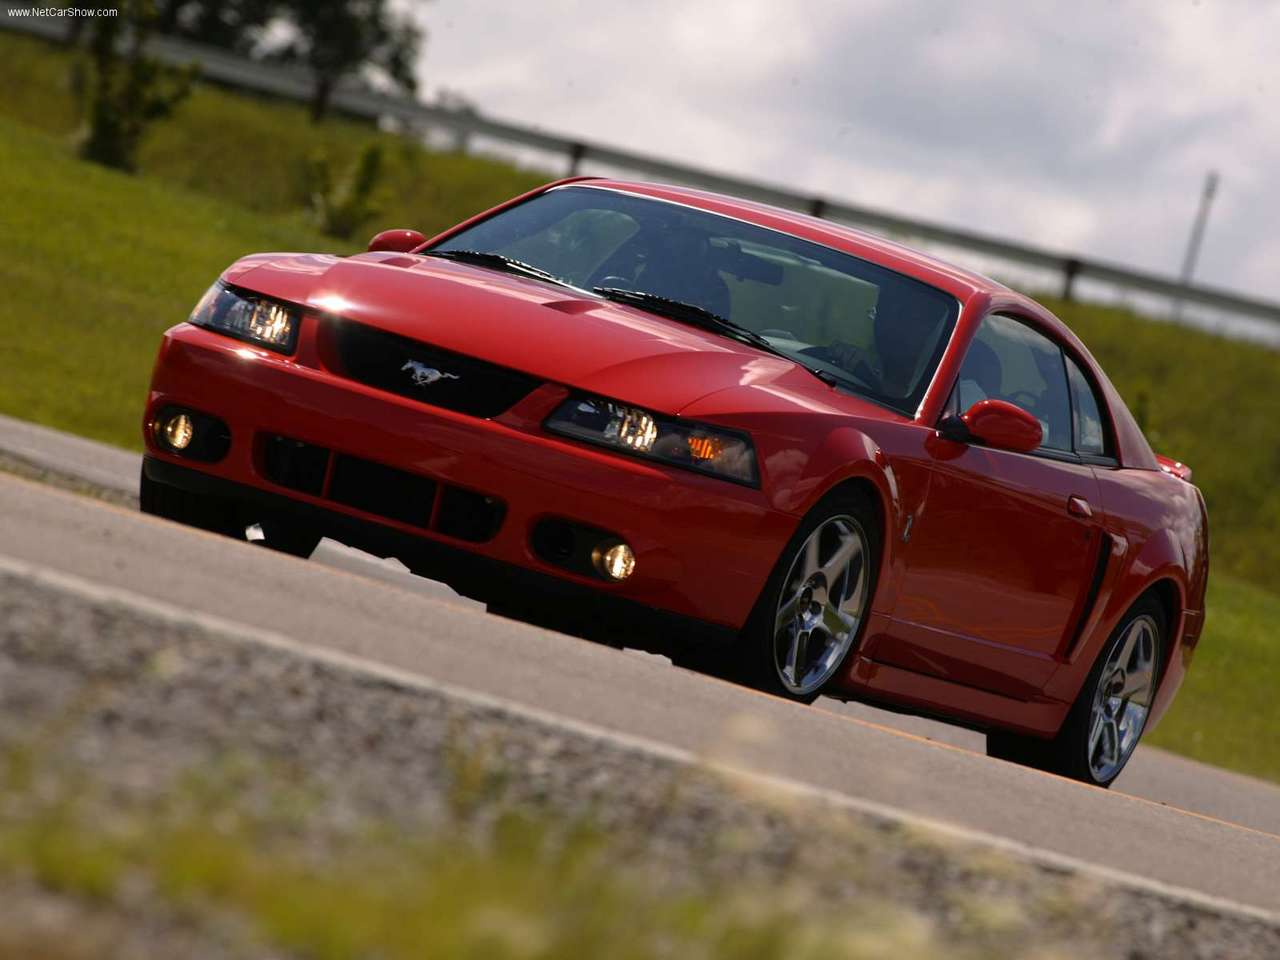 Ford   Populaire fran  ais dautomobiles  2004 Ford Mustang SVT Cobra